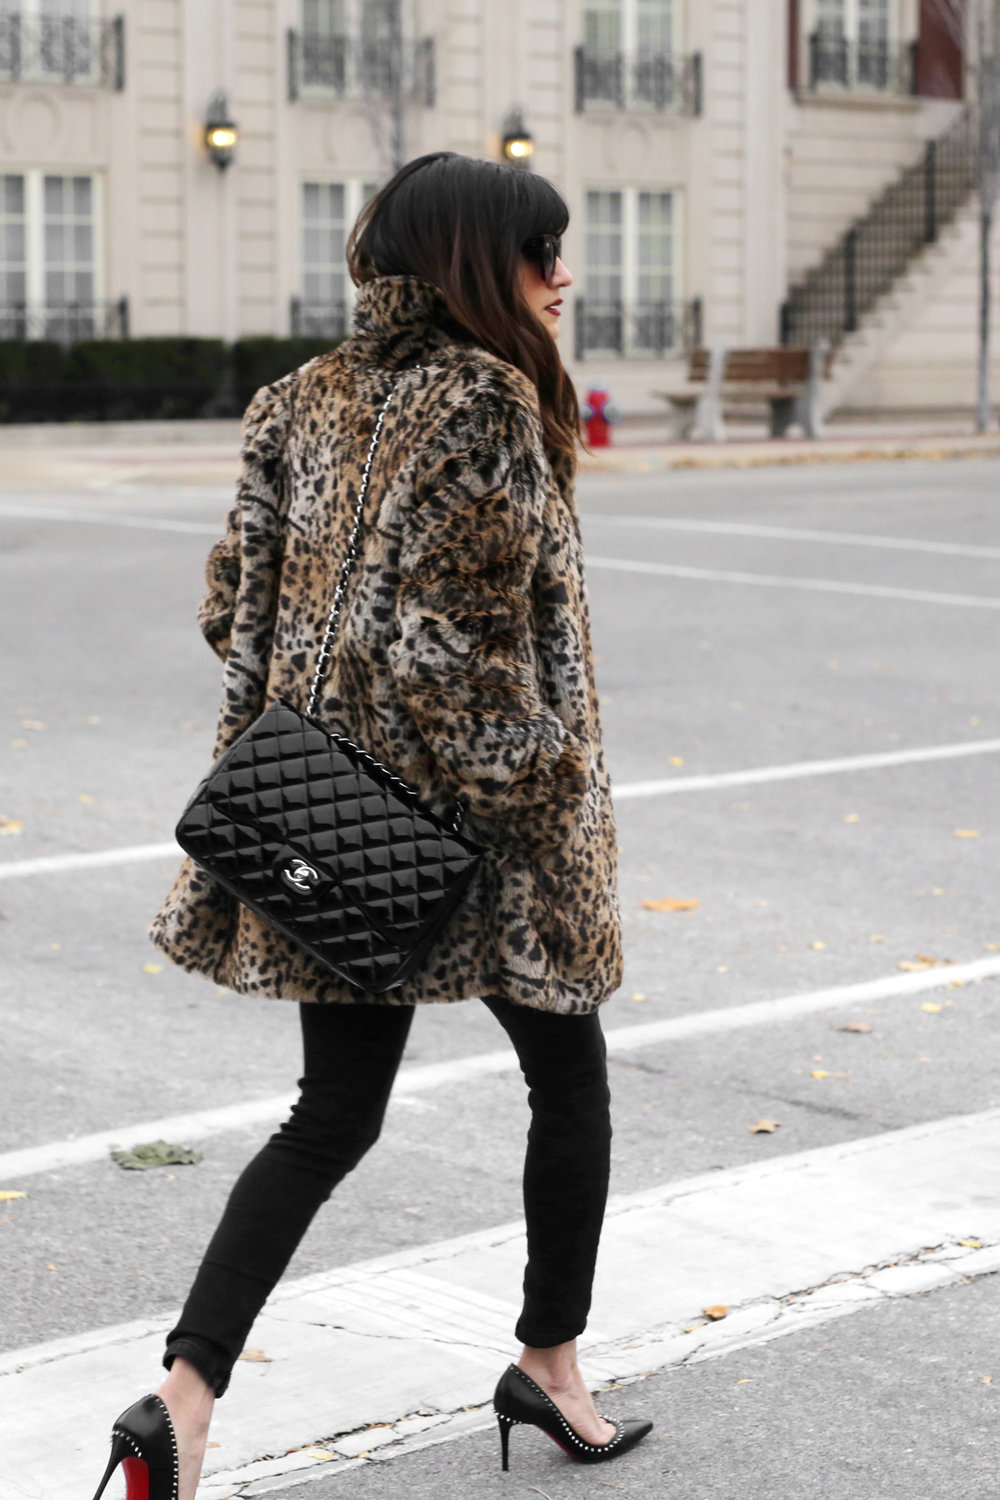 christian louboutin angelina spiked heels, chanel patent leather jumbo bag, leopard coat, kate moss inspiration street style_2992.jpg